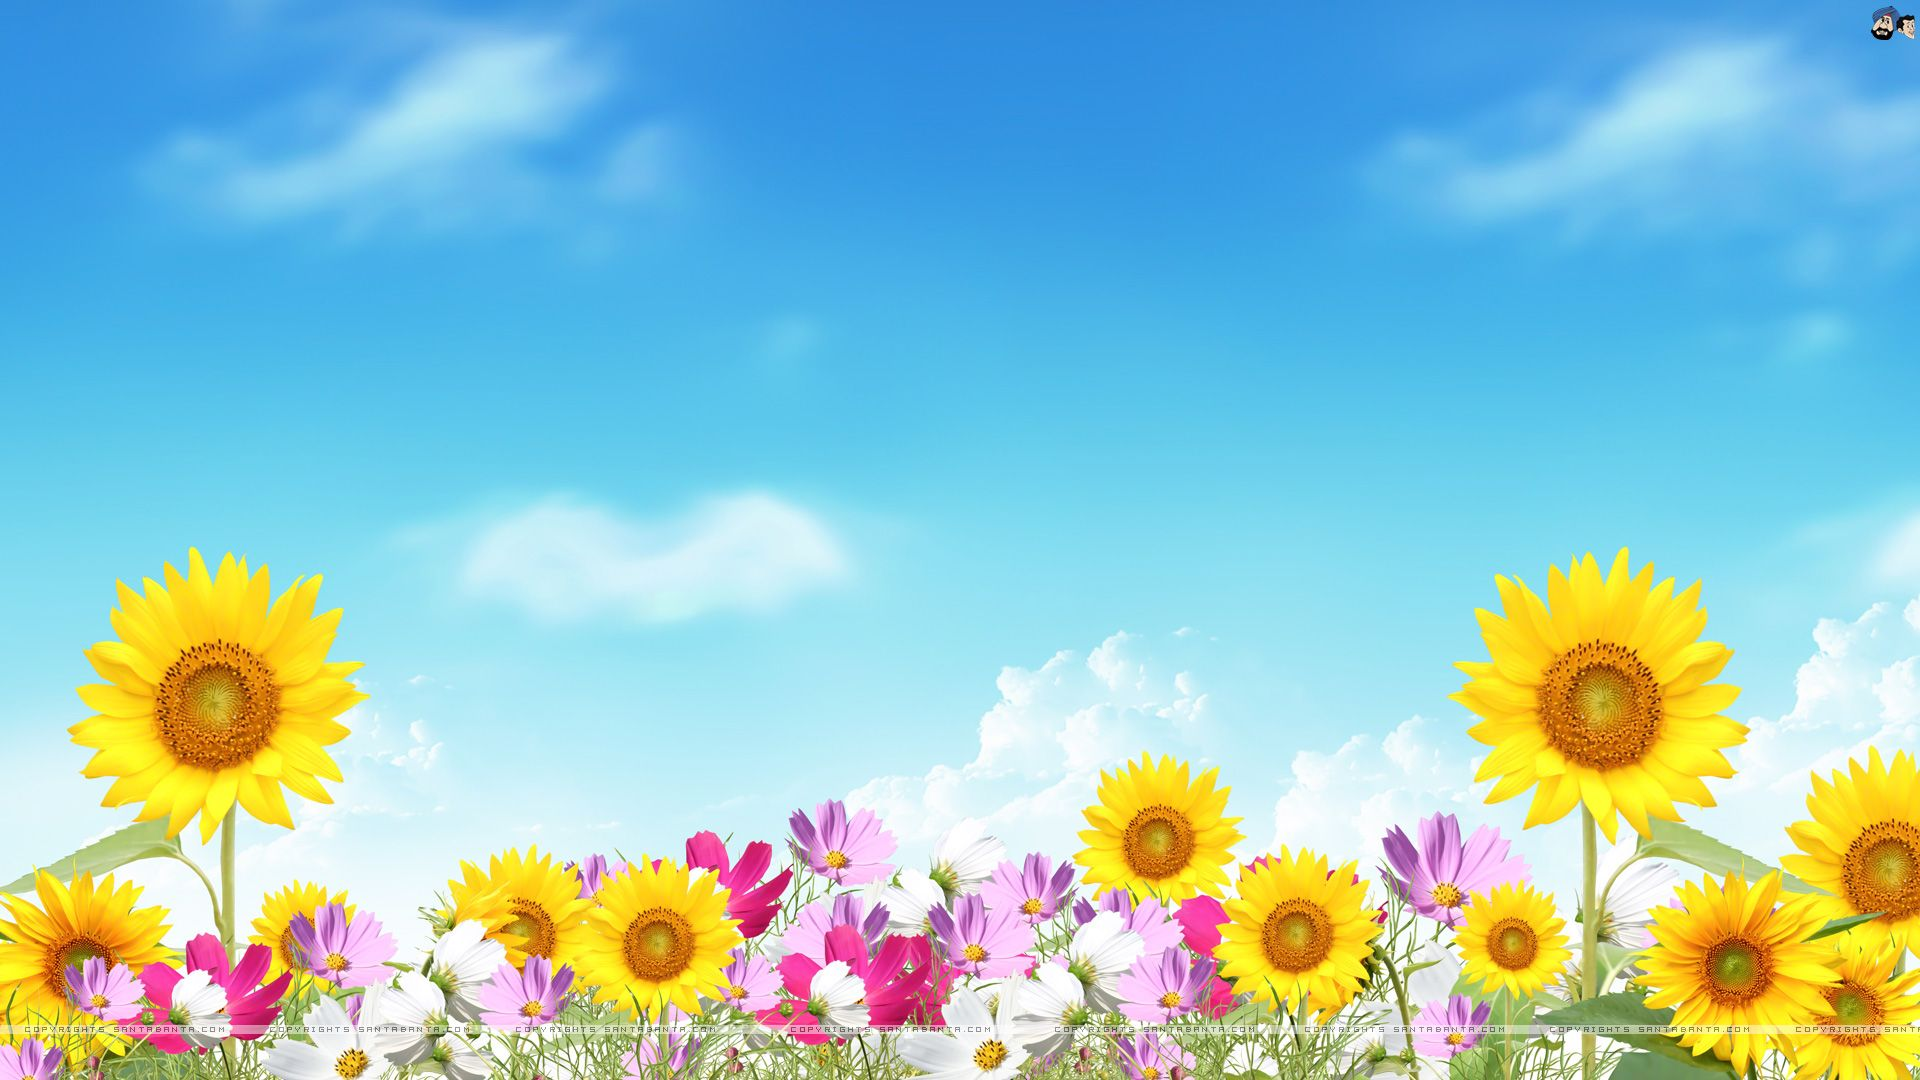 Image for Summer Flowers Computer Backgrounds Desktop 1920x1080